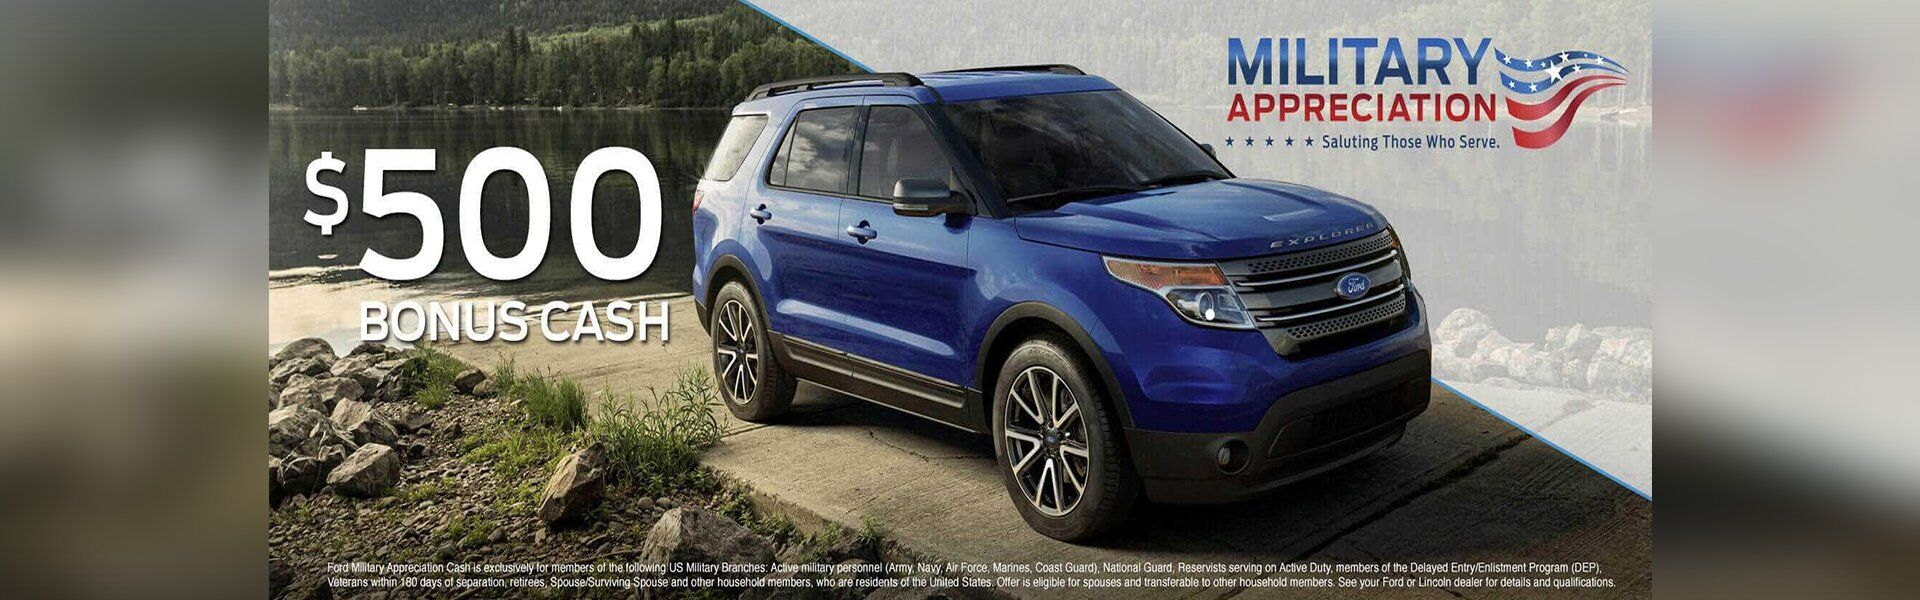 Kovatch Ford Military Discounts